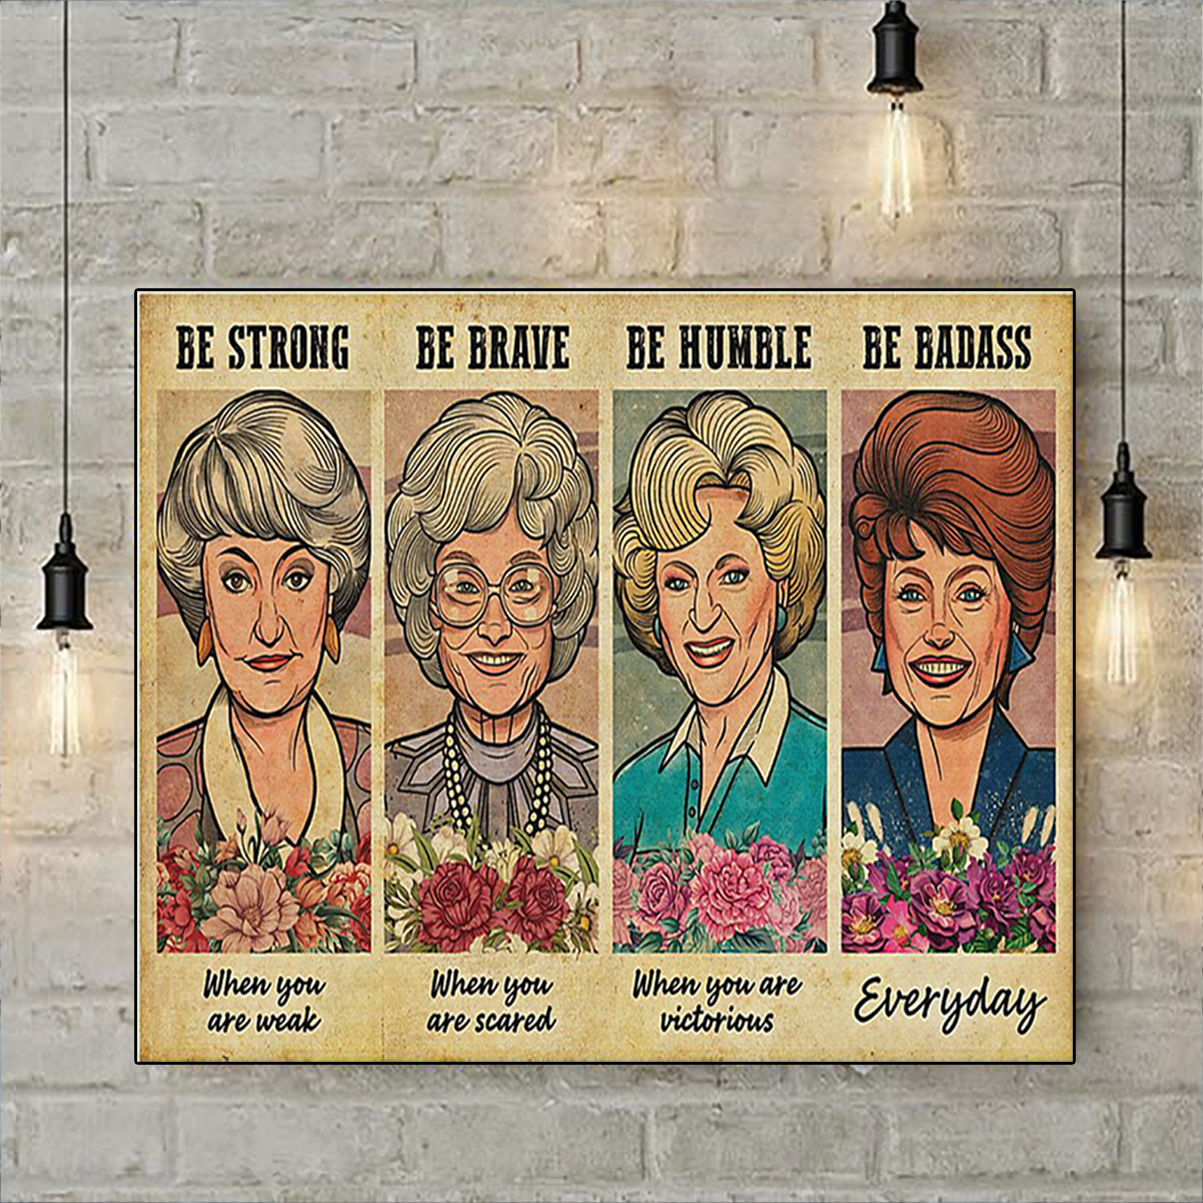 The Golden Girls be strong be brave be humble be badass poster A3